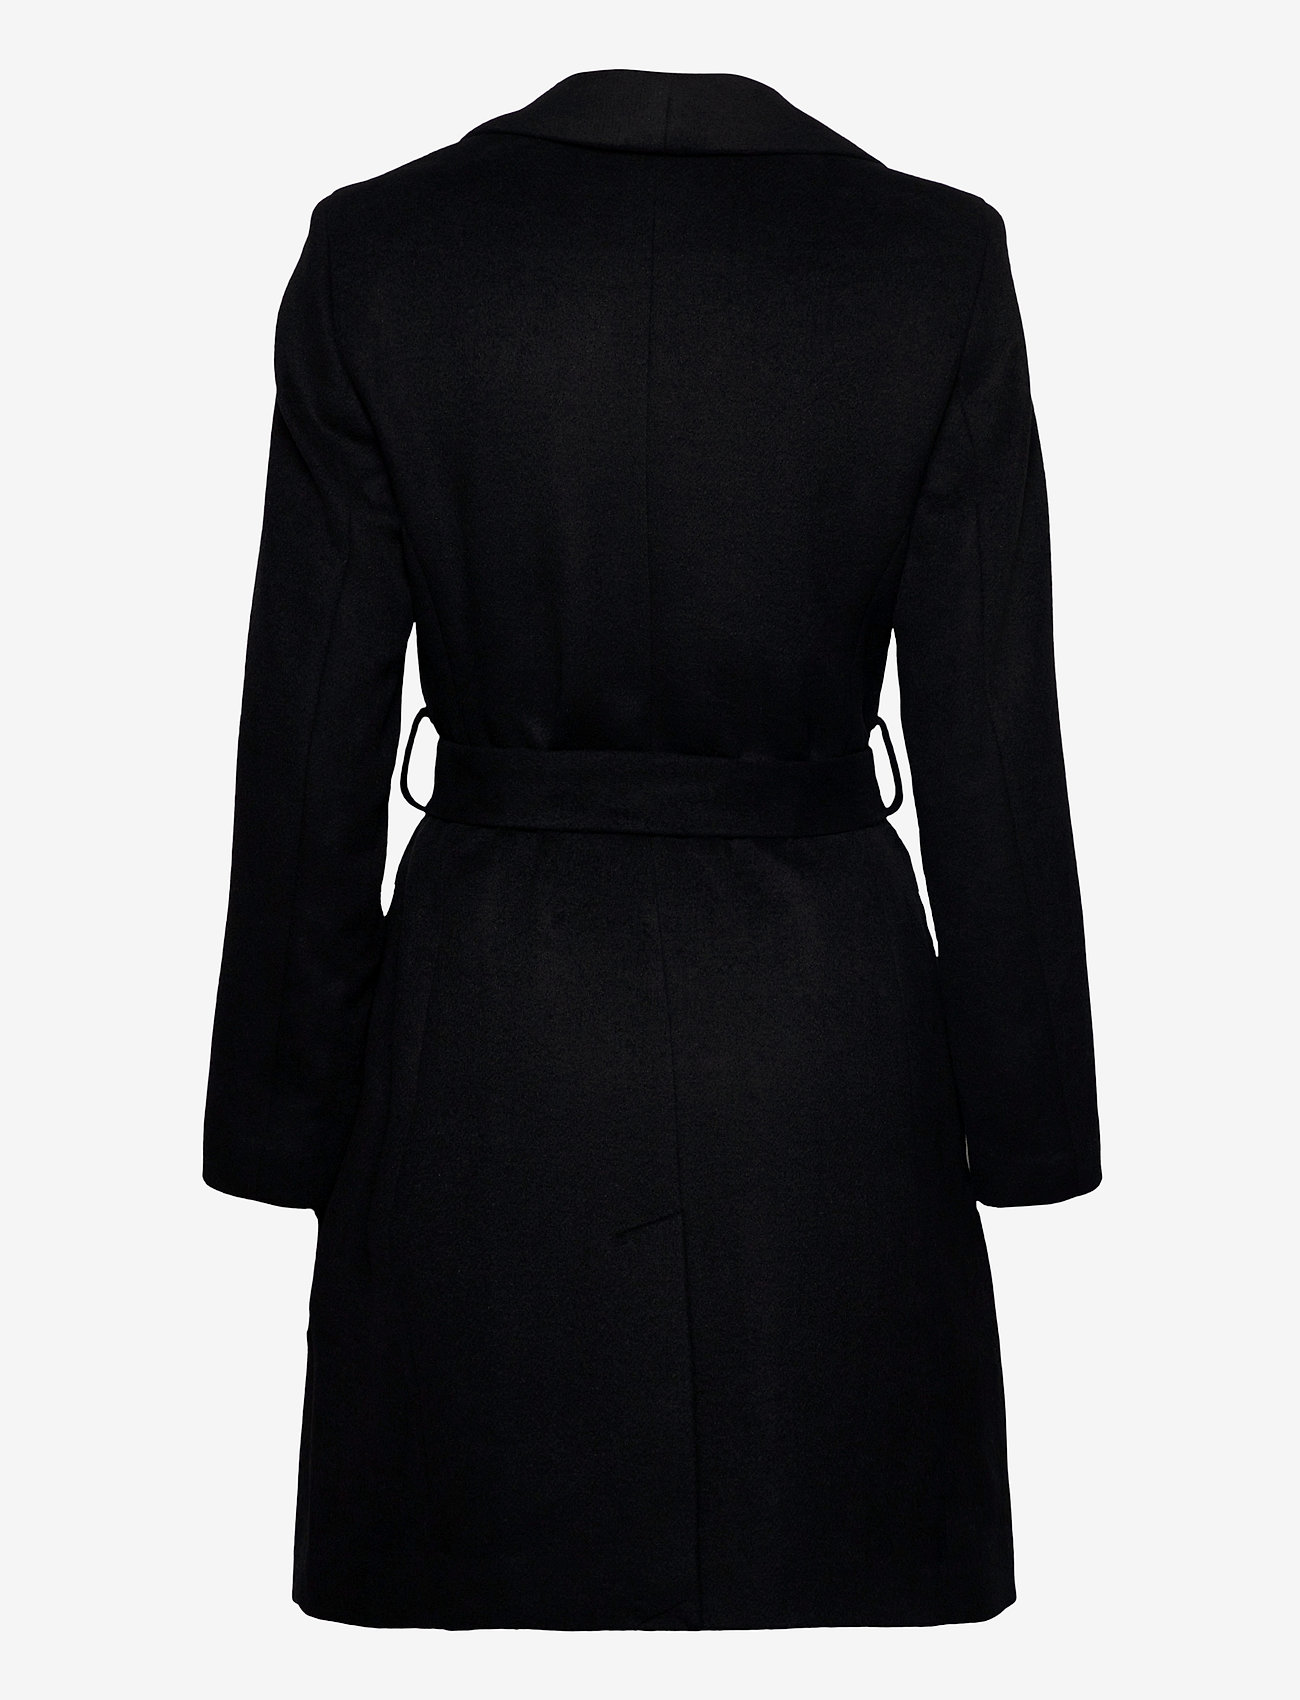 Esprit Collection - Coats woven - manteaux en laine - black - 1